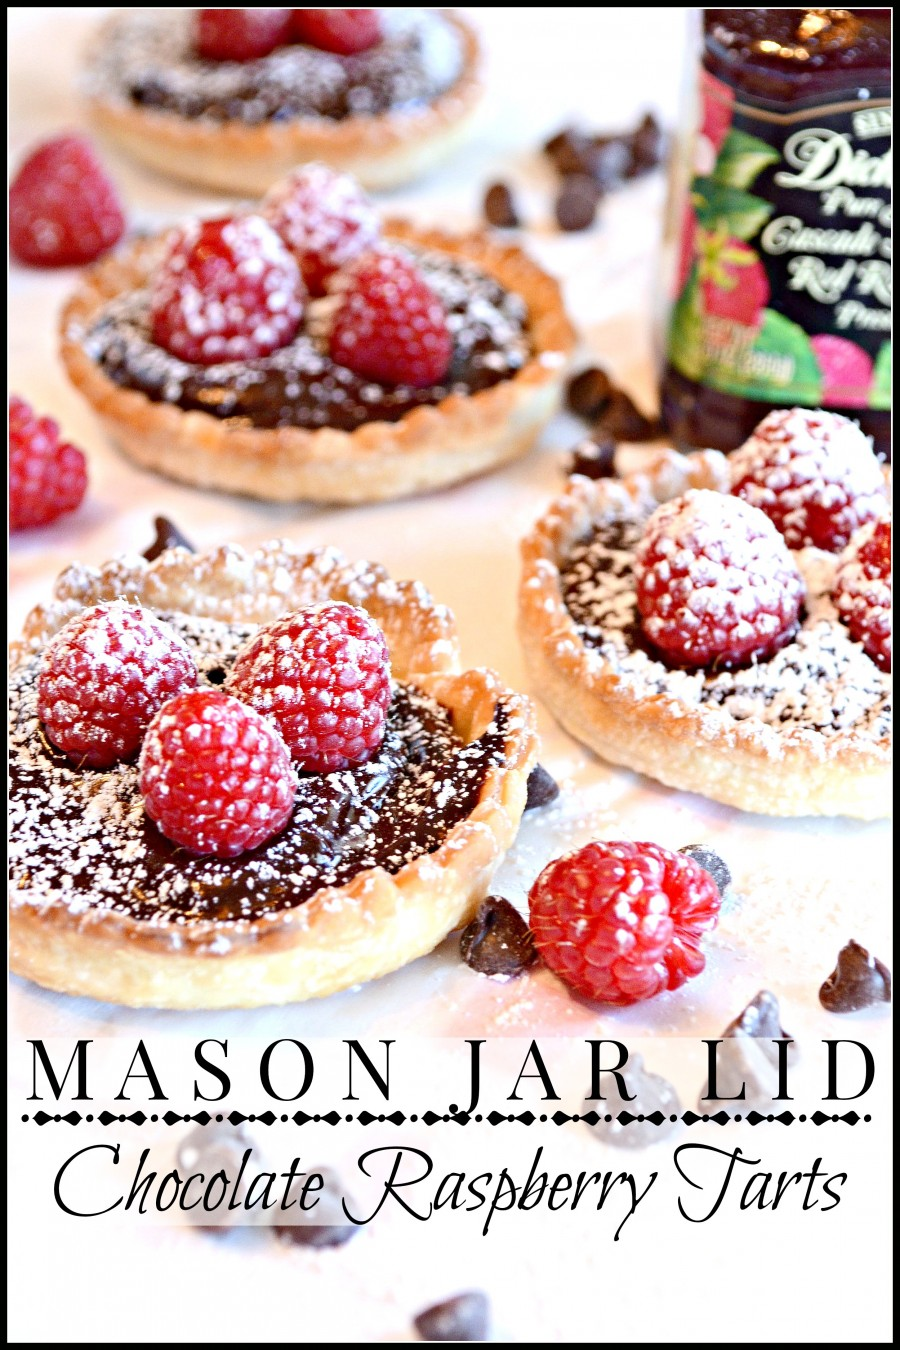 mason-jar-lid-chocolate-raspberry-tarts-so-easy-to-make-and-so-impressive-stonegableblog-com